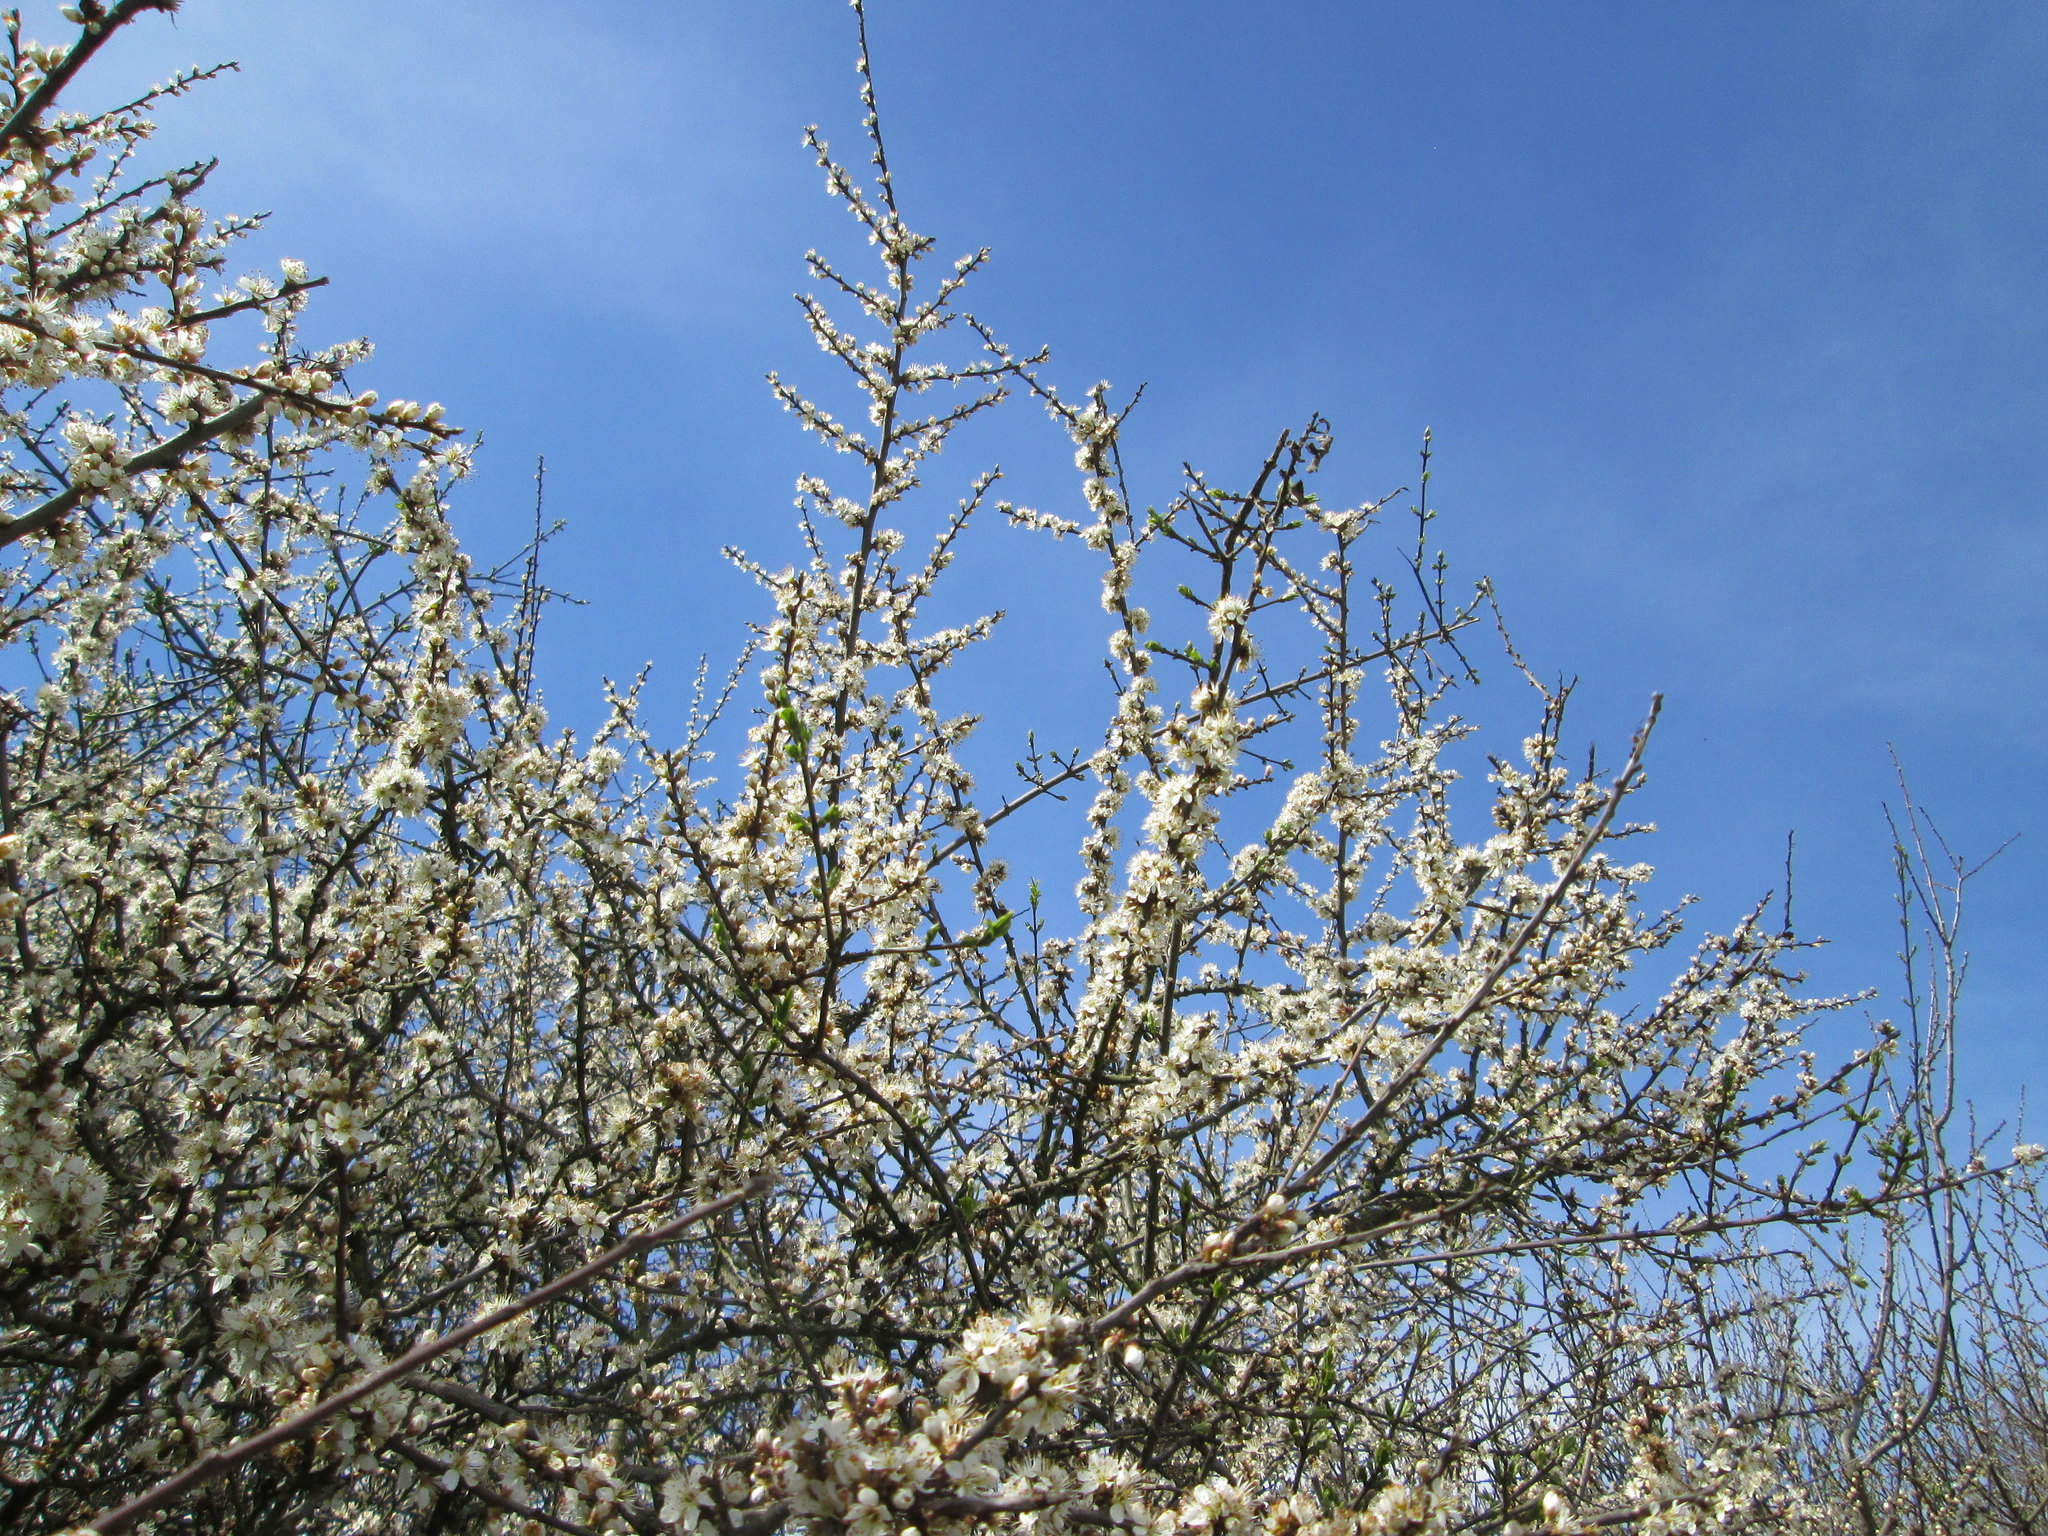 Andreas Rockstein: Prunus spinosa - Flickr Commons (Creative Commons Licence Version 4.0)